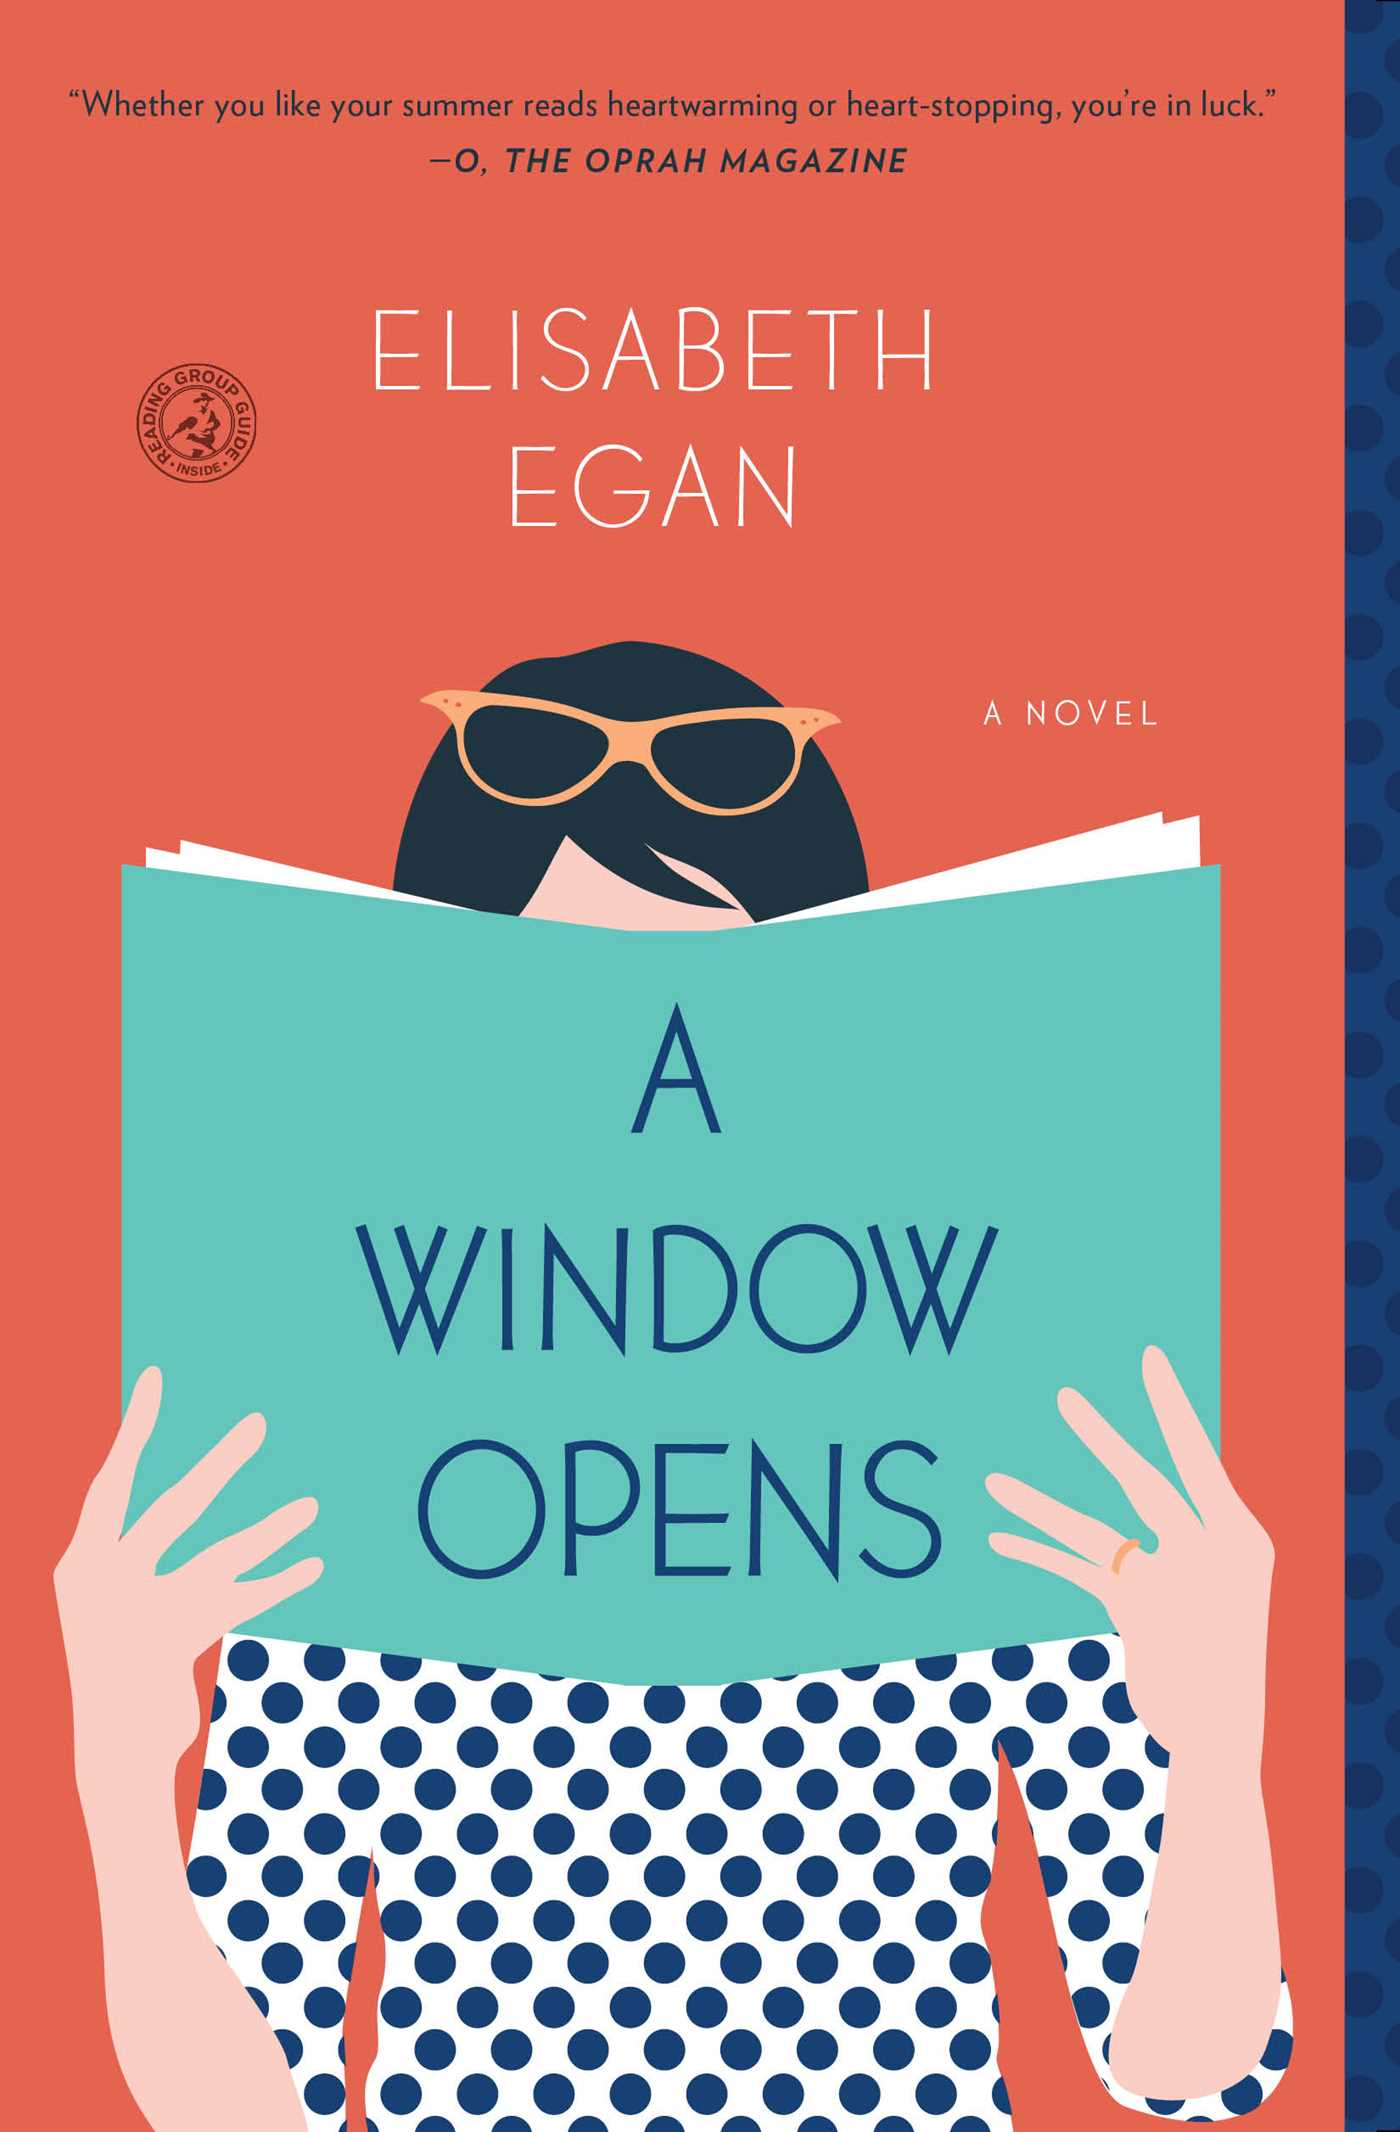 The cover of the book A Window Opens